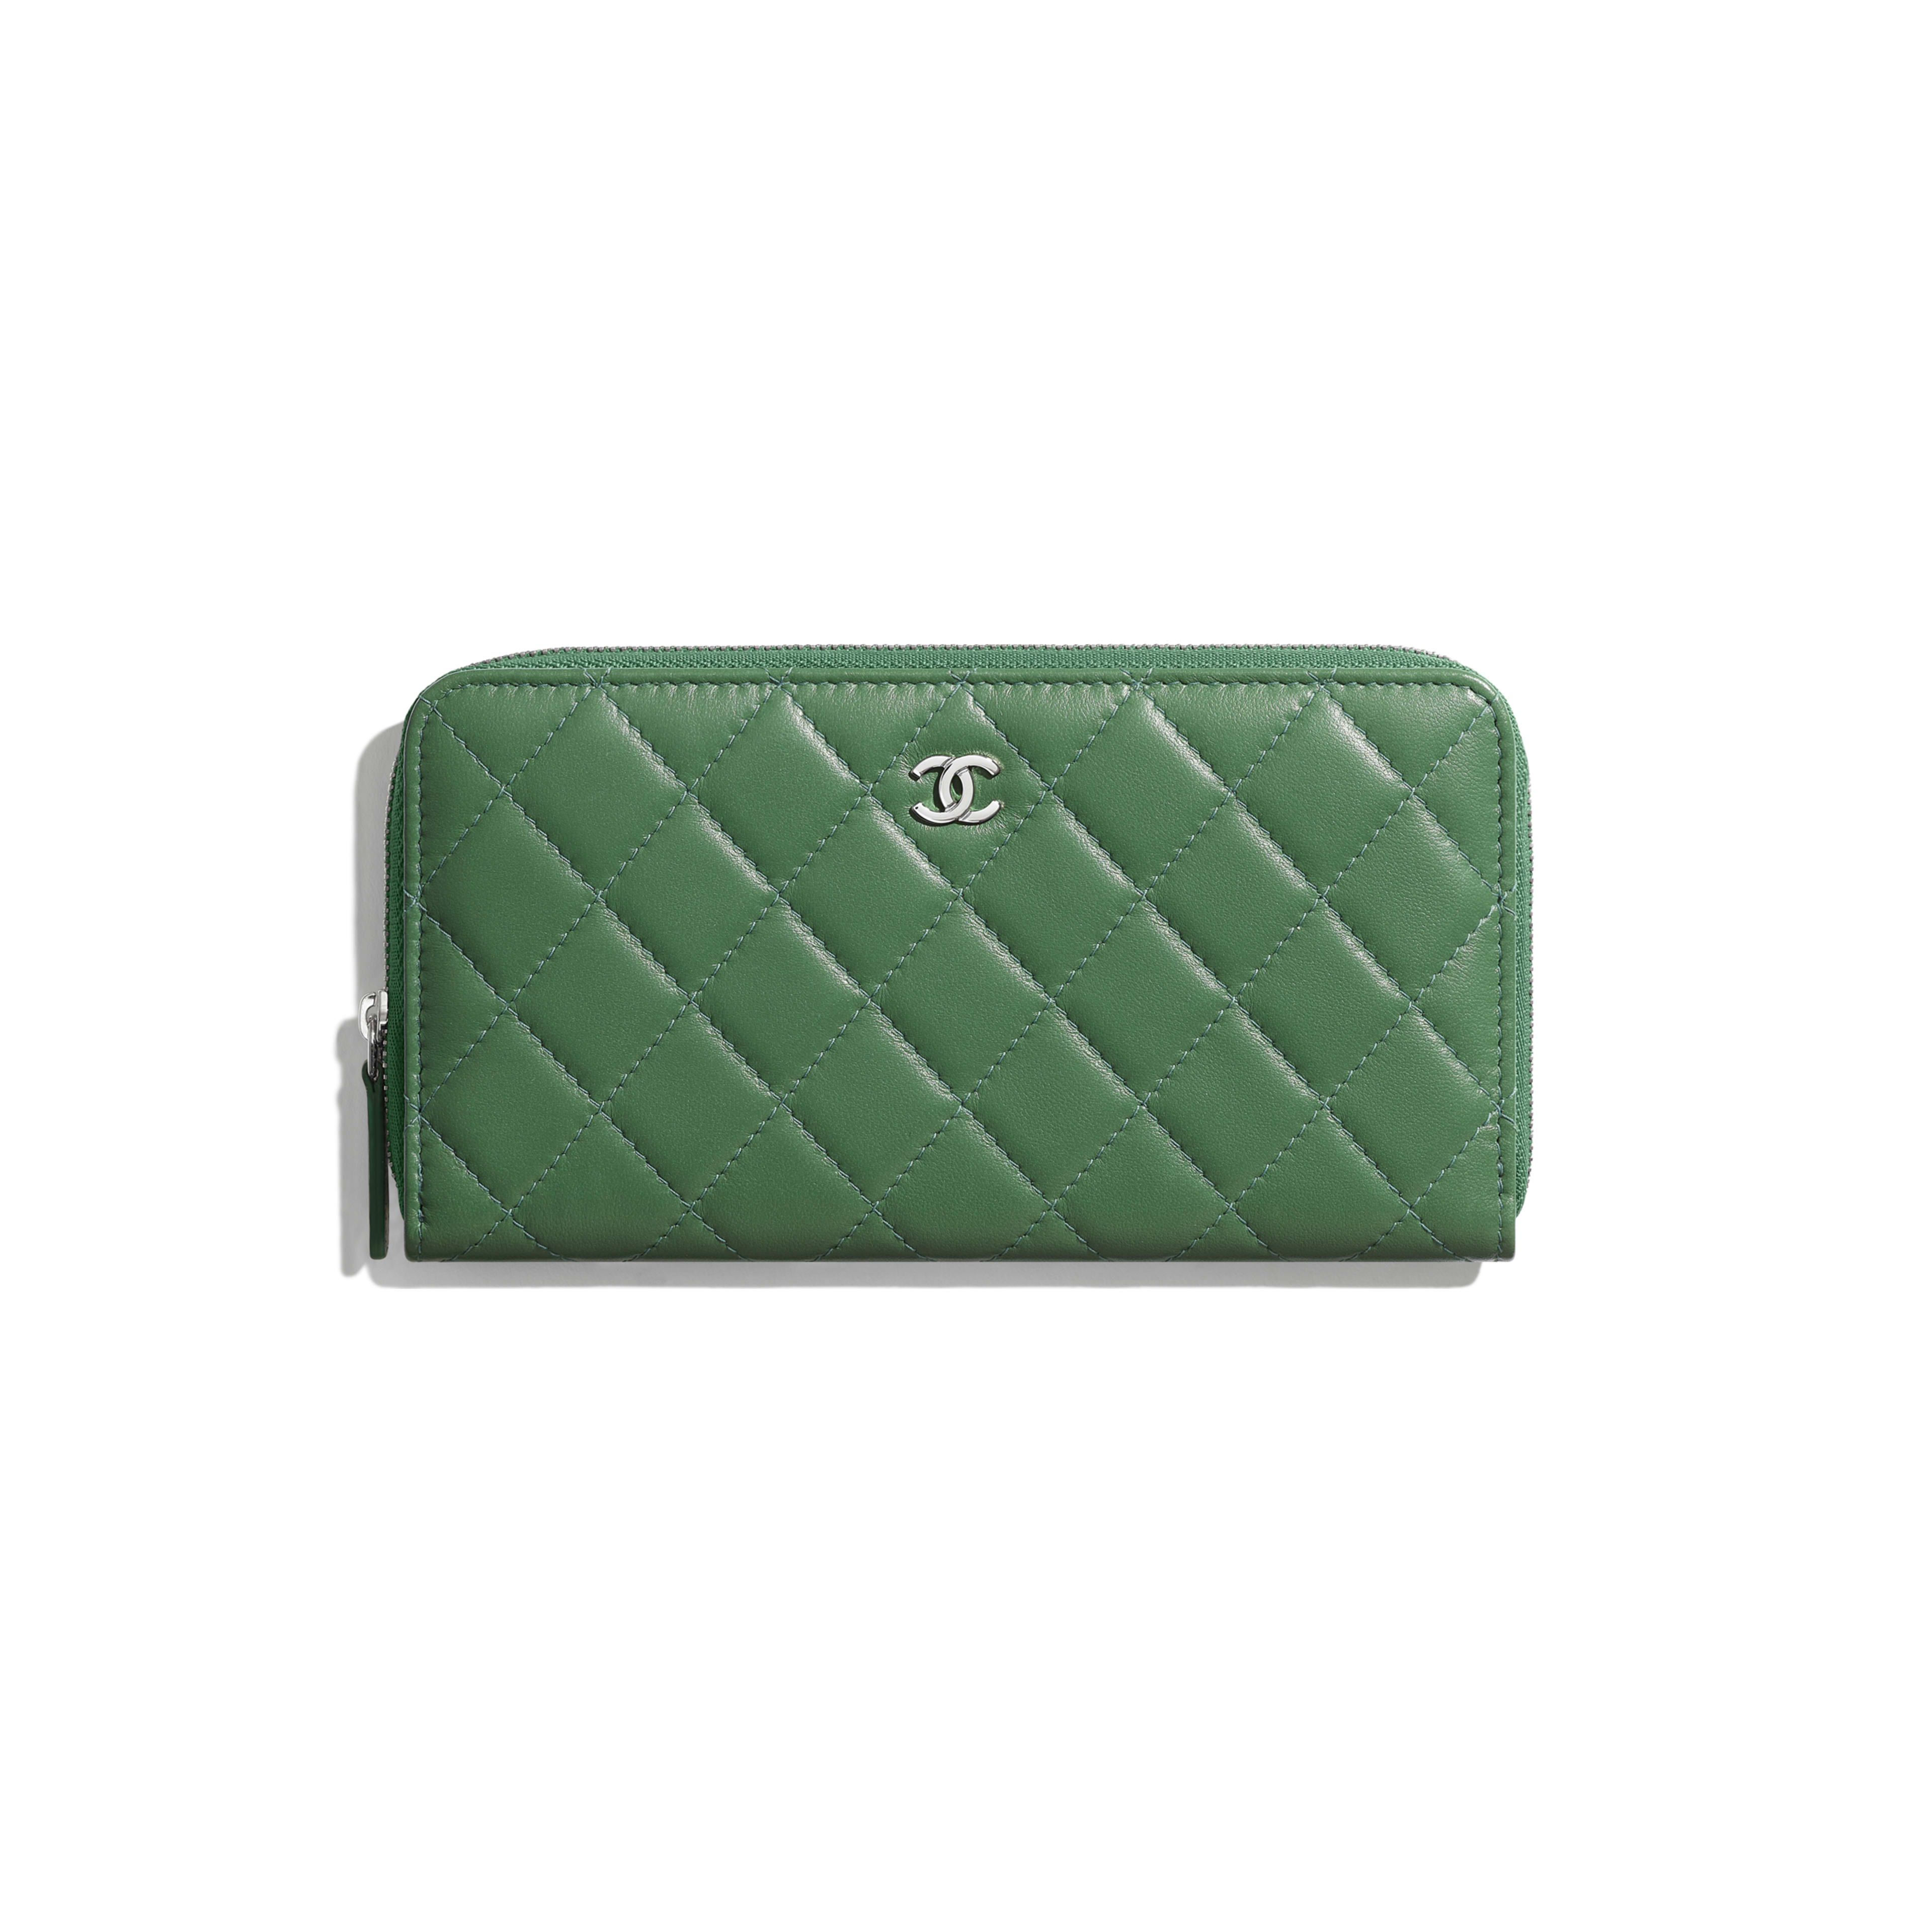 Classic Long Zipped Wallet - Green - Lambskin - Default view - see full sized version